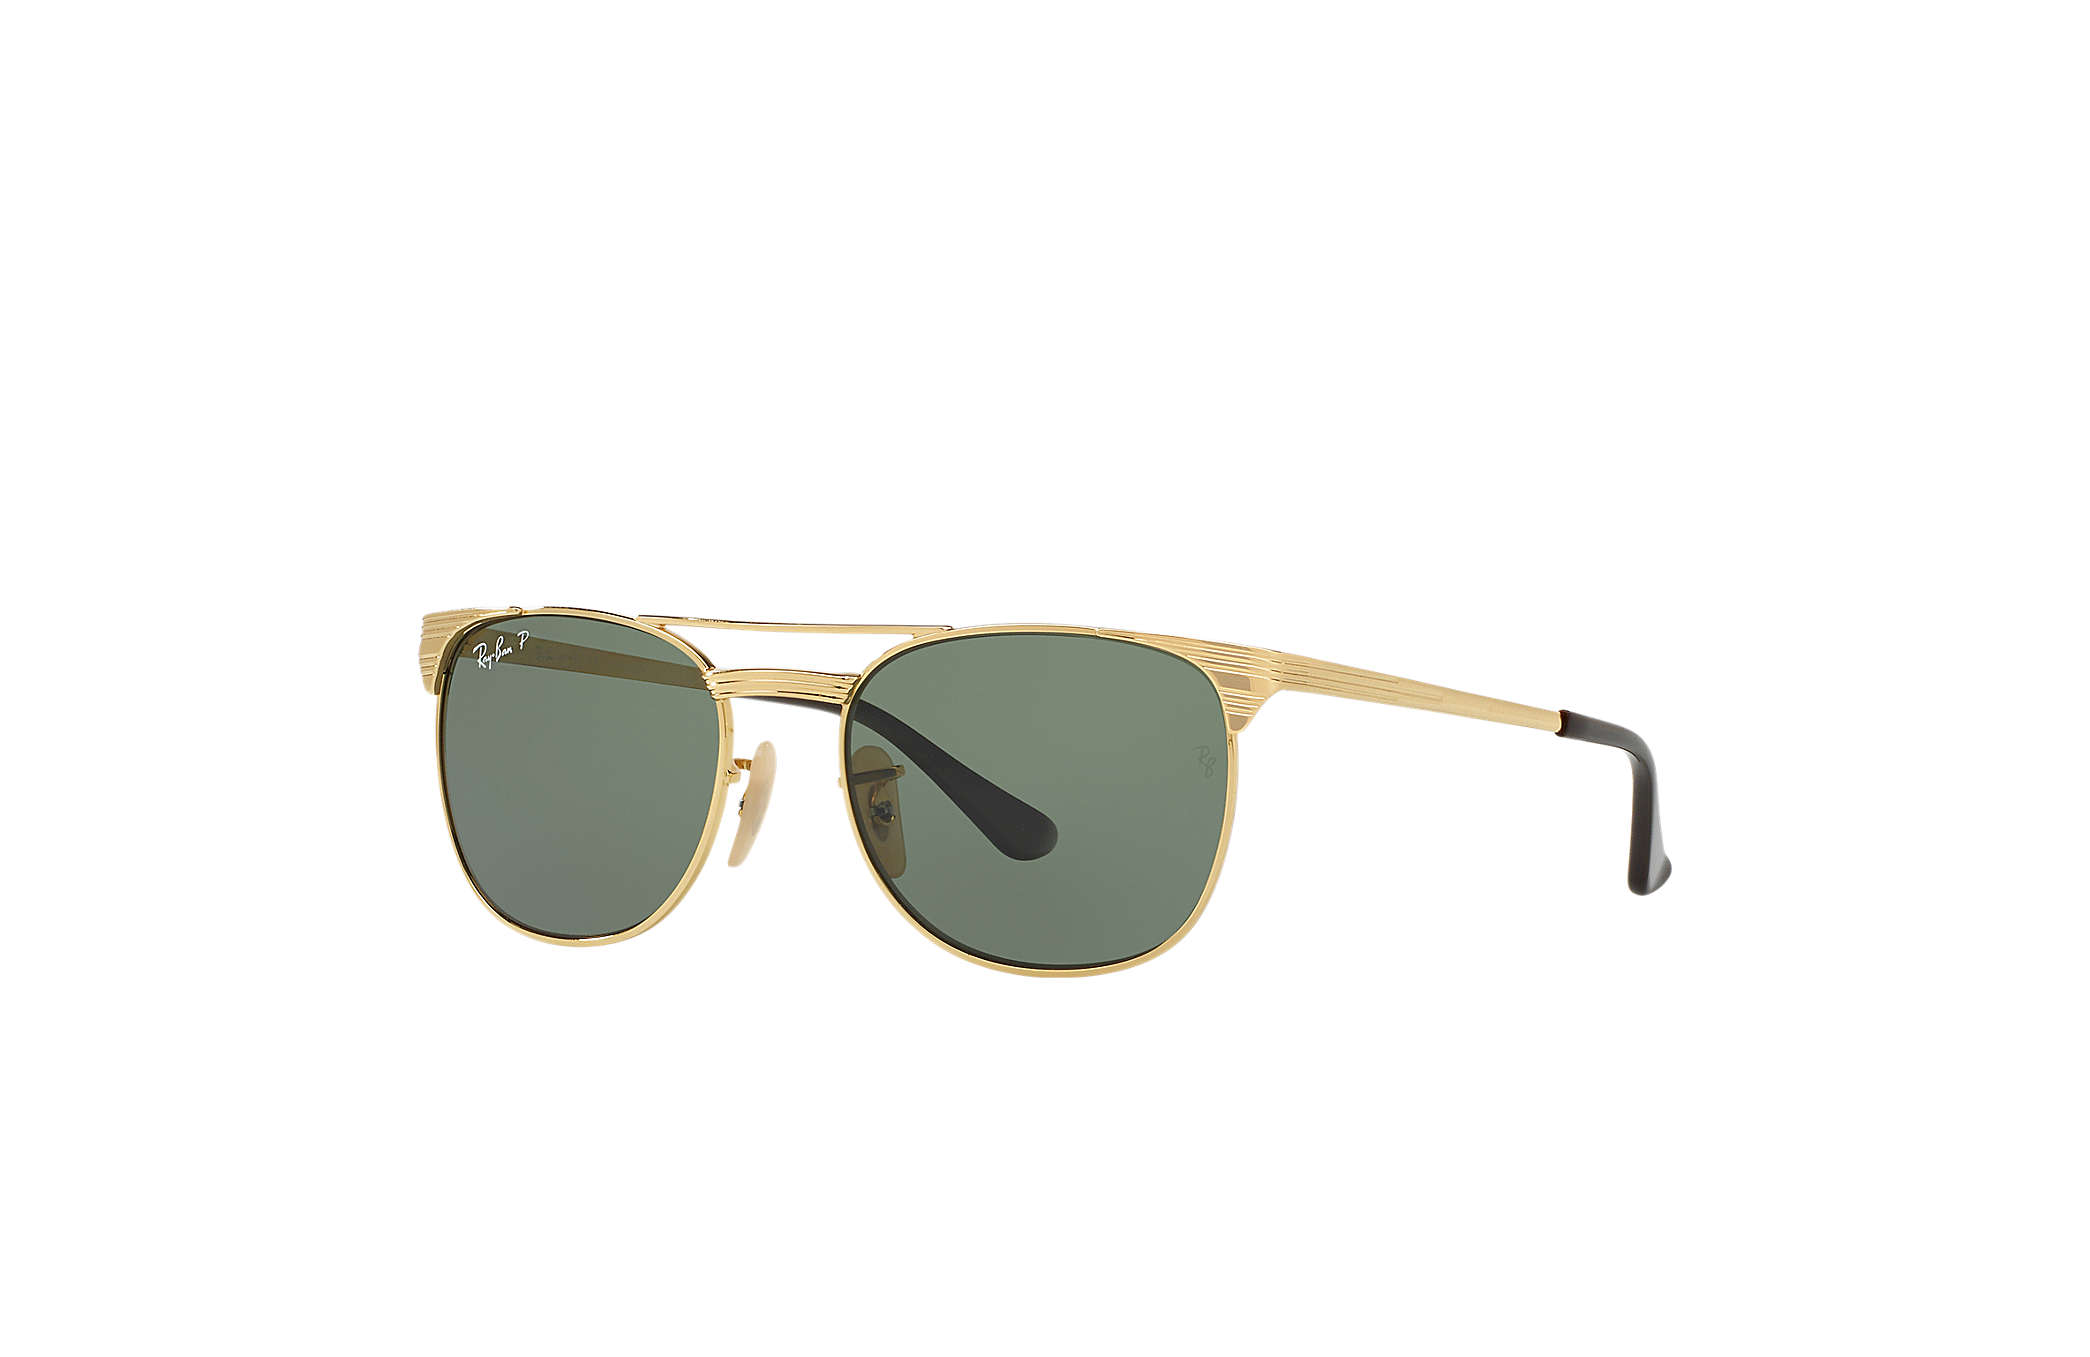 4cb752750a7 Ray-Ban Signet Junior RB9540S Gold - Metal - Green Polarized Lenses ...